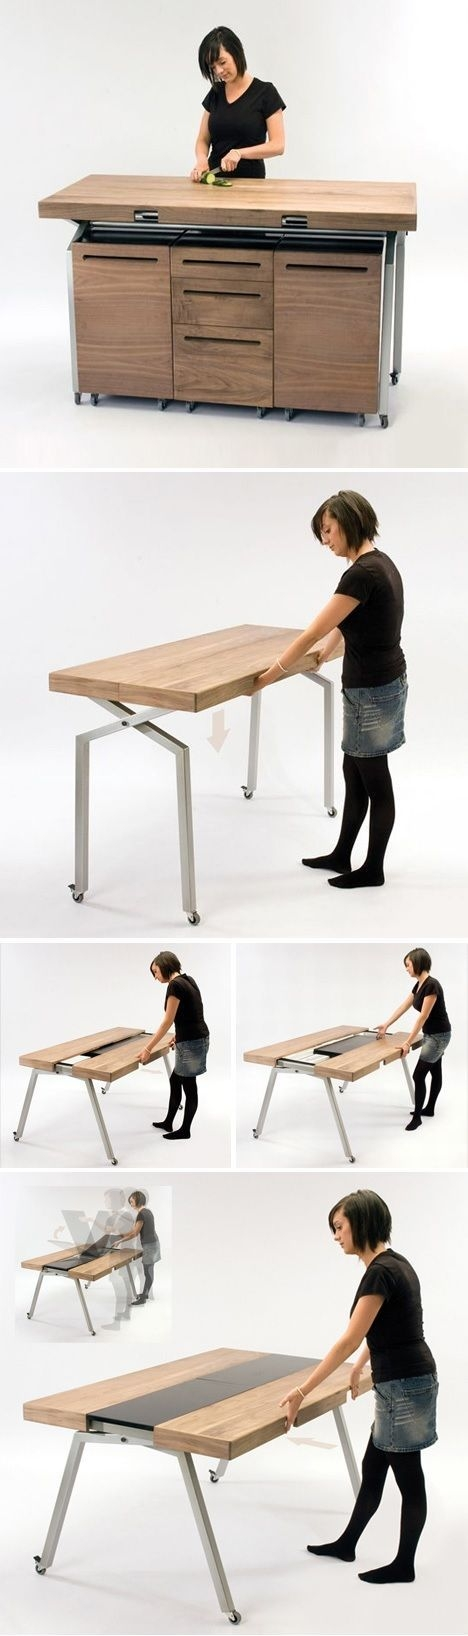 Kitchen Workspace Converts To Dining Table  Dornobexpandablediningtabledoublesas